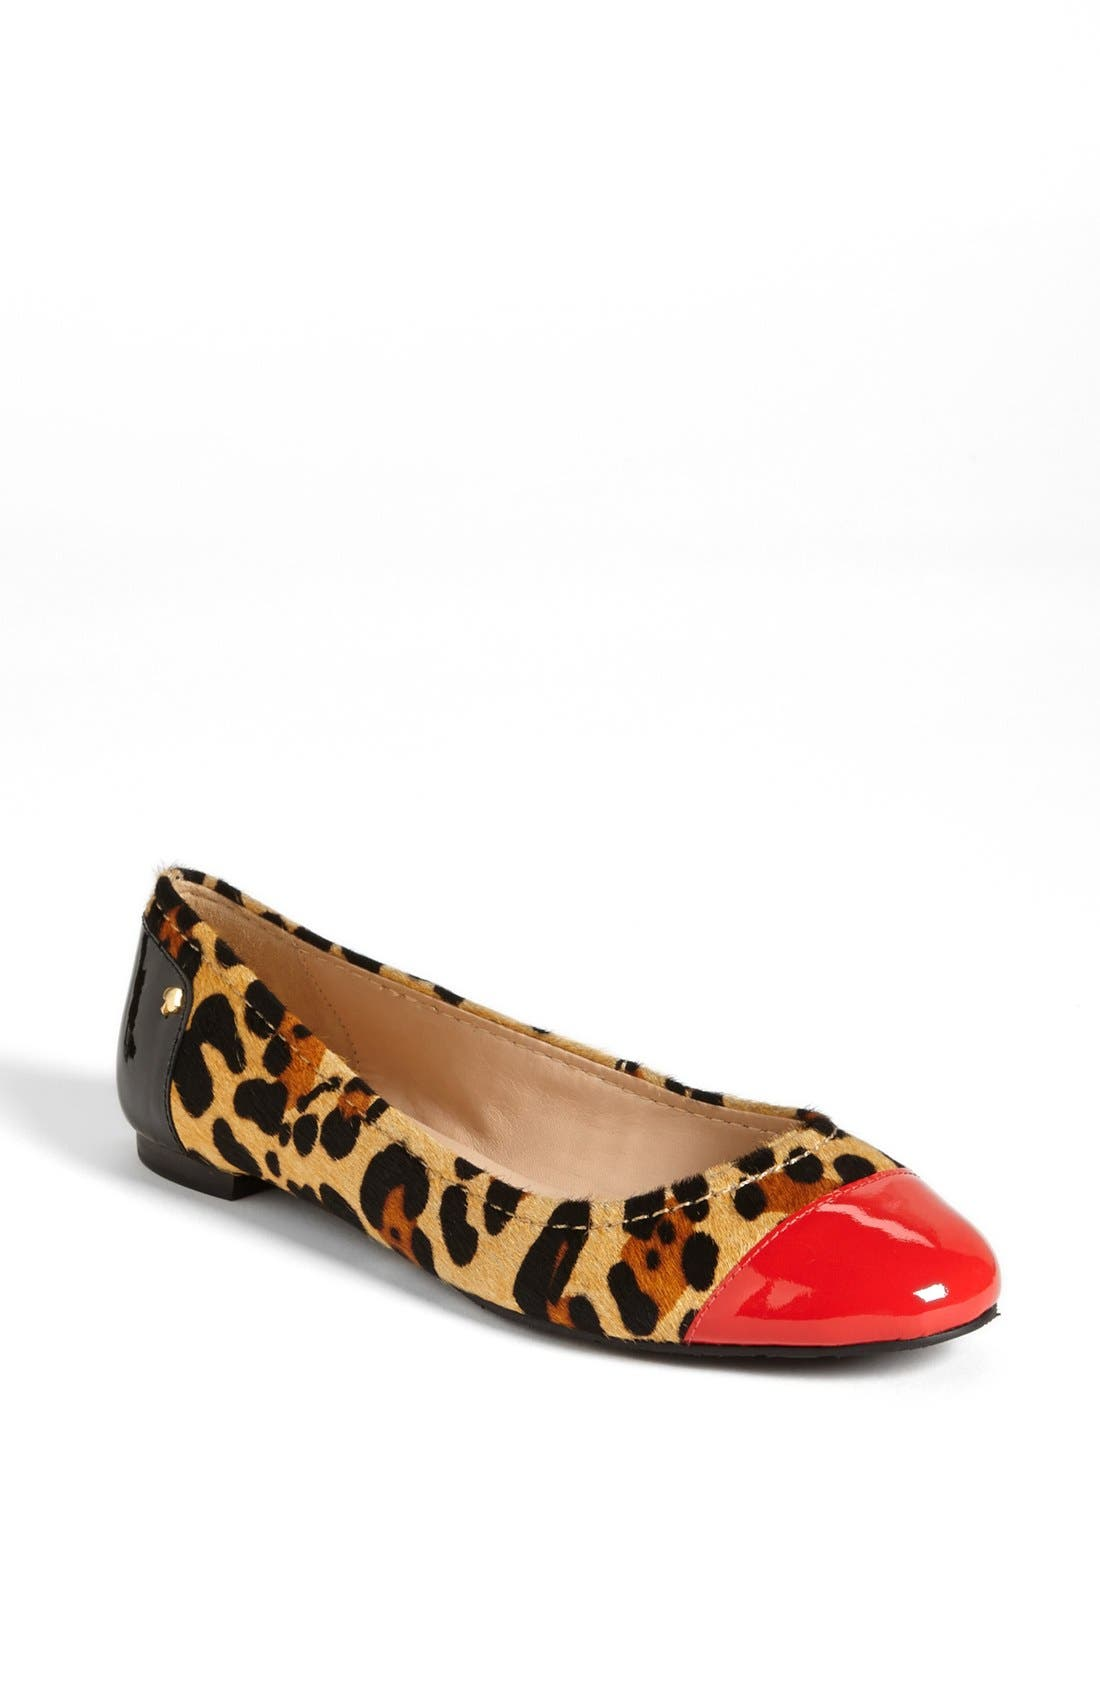 Alternate Image 1 Selected - KATE SPADE TERRY FLAT